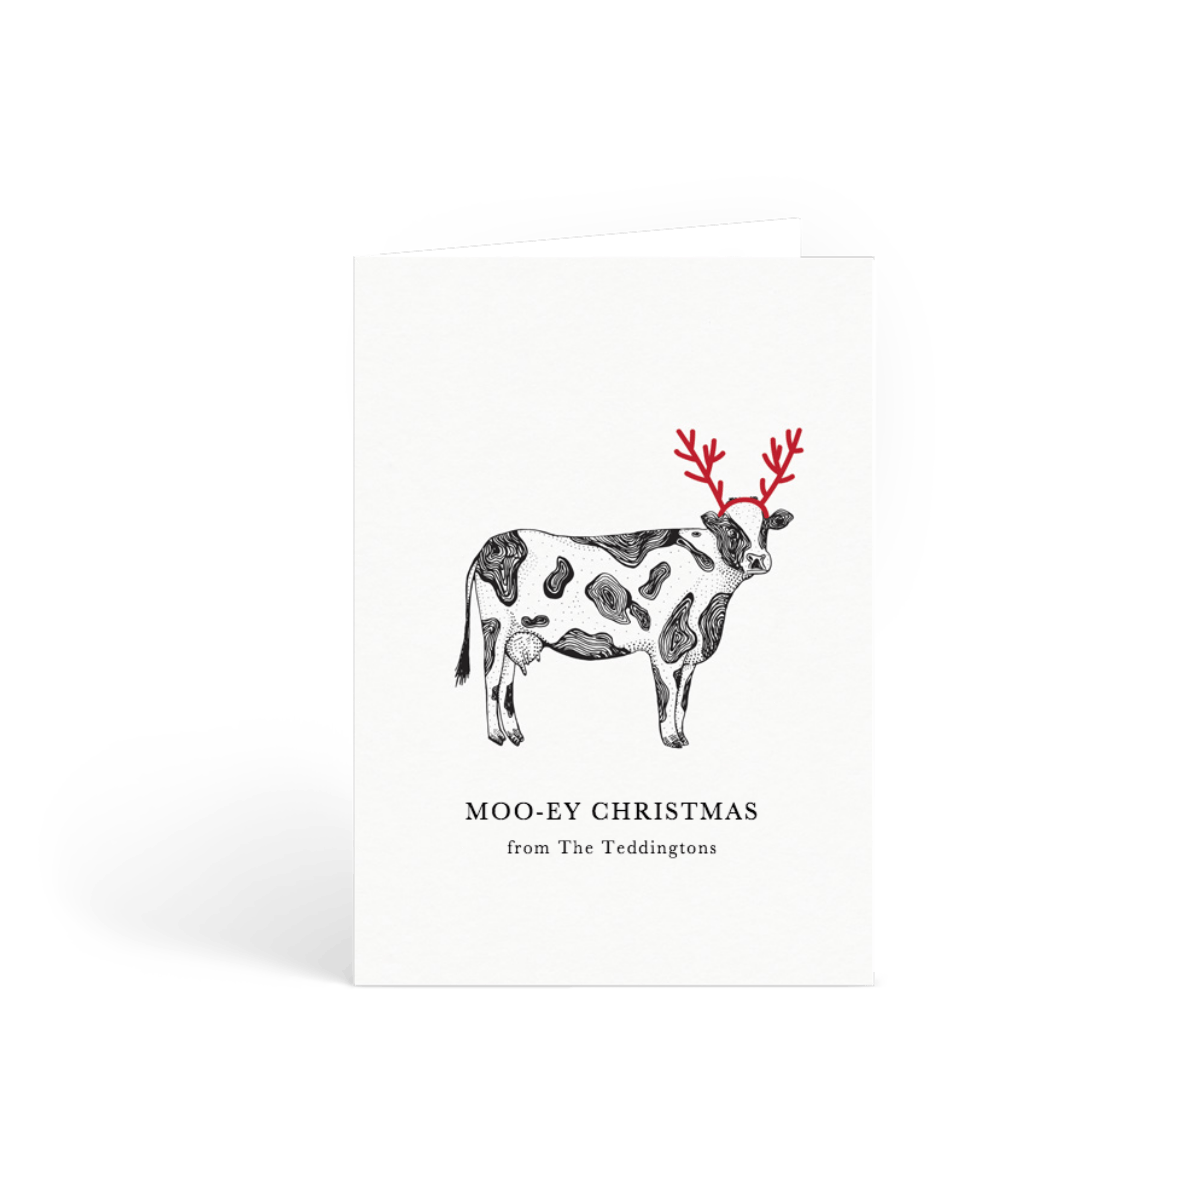 Https%3a%2f%2fwww.papier.com%2fproduct image%2f12486%2f2%2fchristmas cow 3144 front 1537270368.png?ixlib=rb 1.1